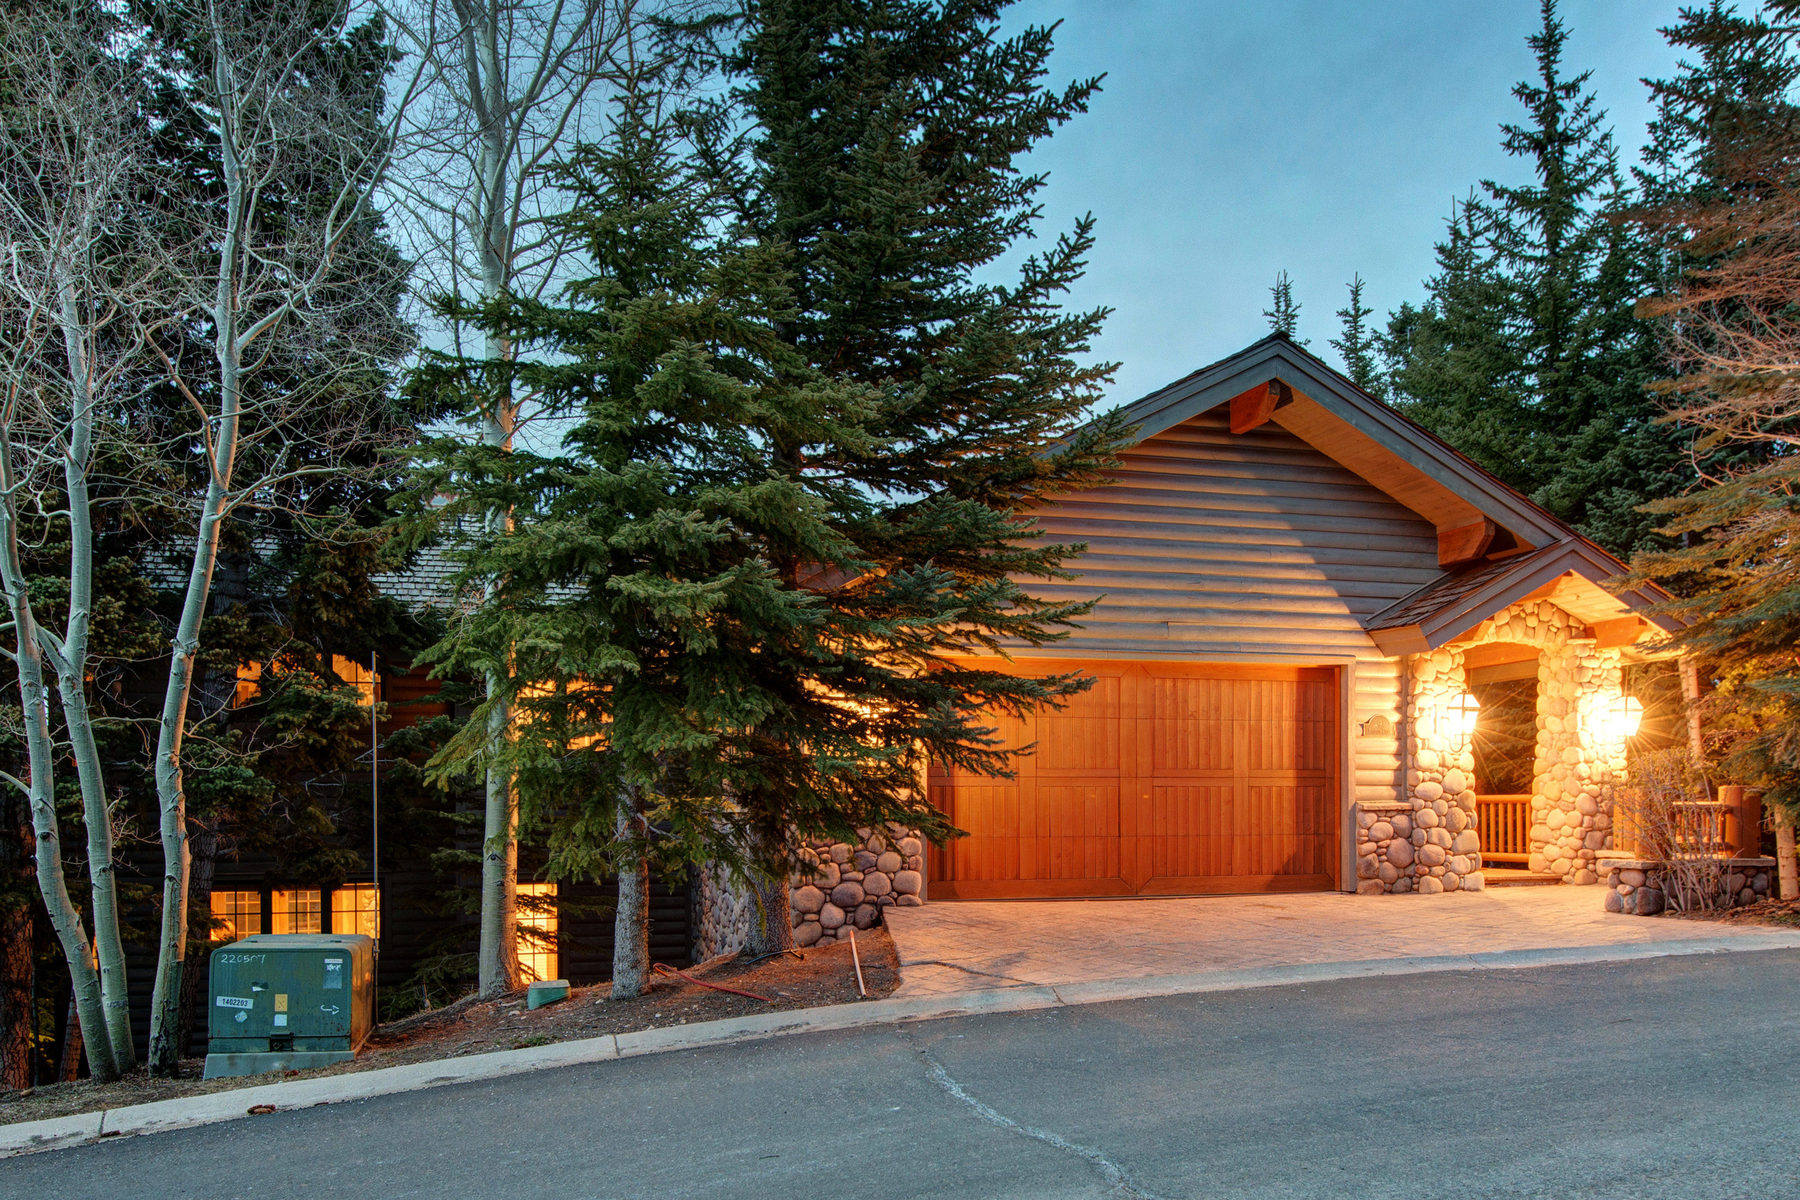 Single Family Home for Sale at Stone's Throw from Skiing with Views 9 Bellevue Court Park City, Utah 84060 United States